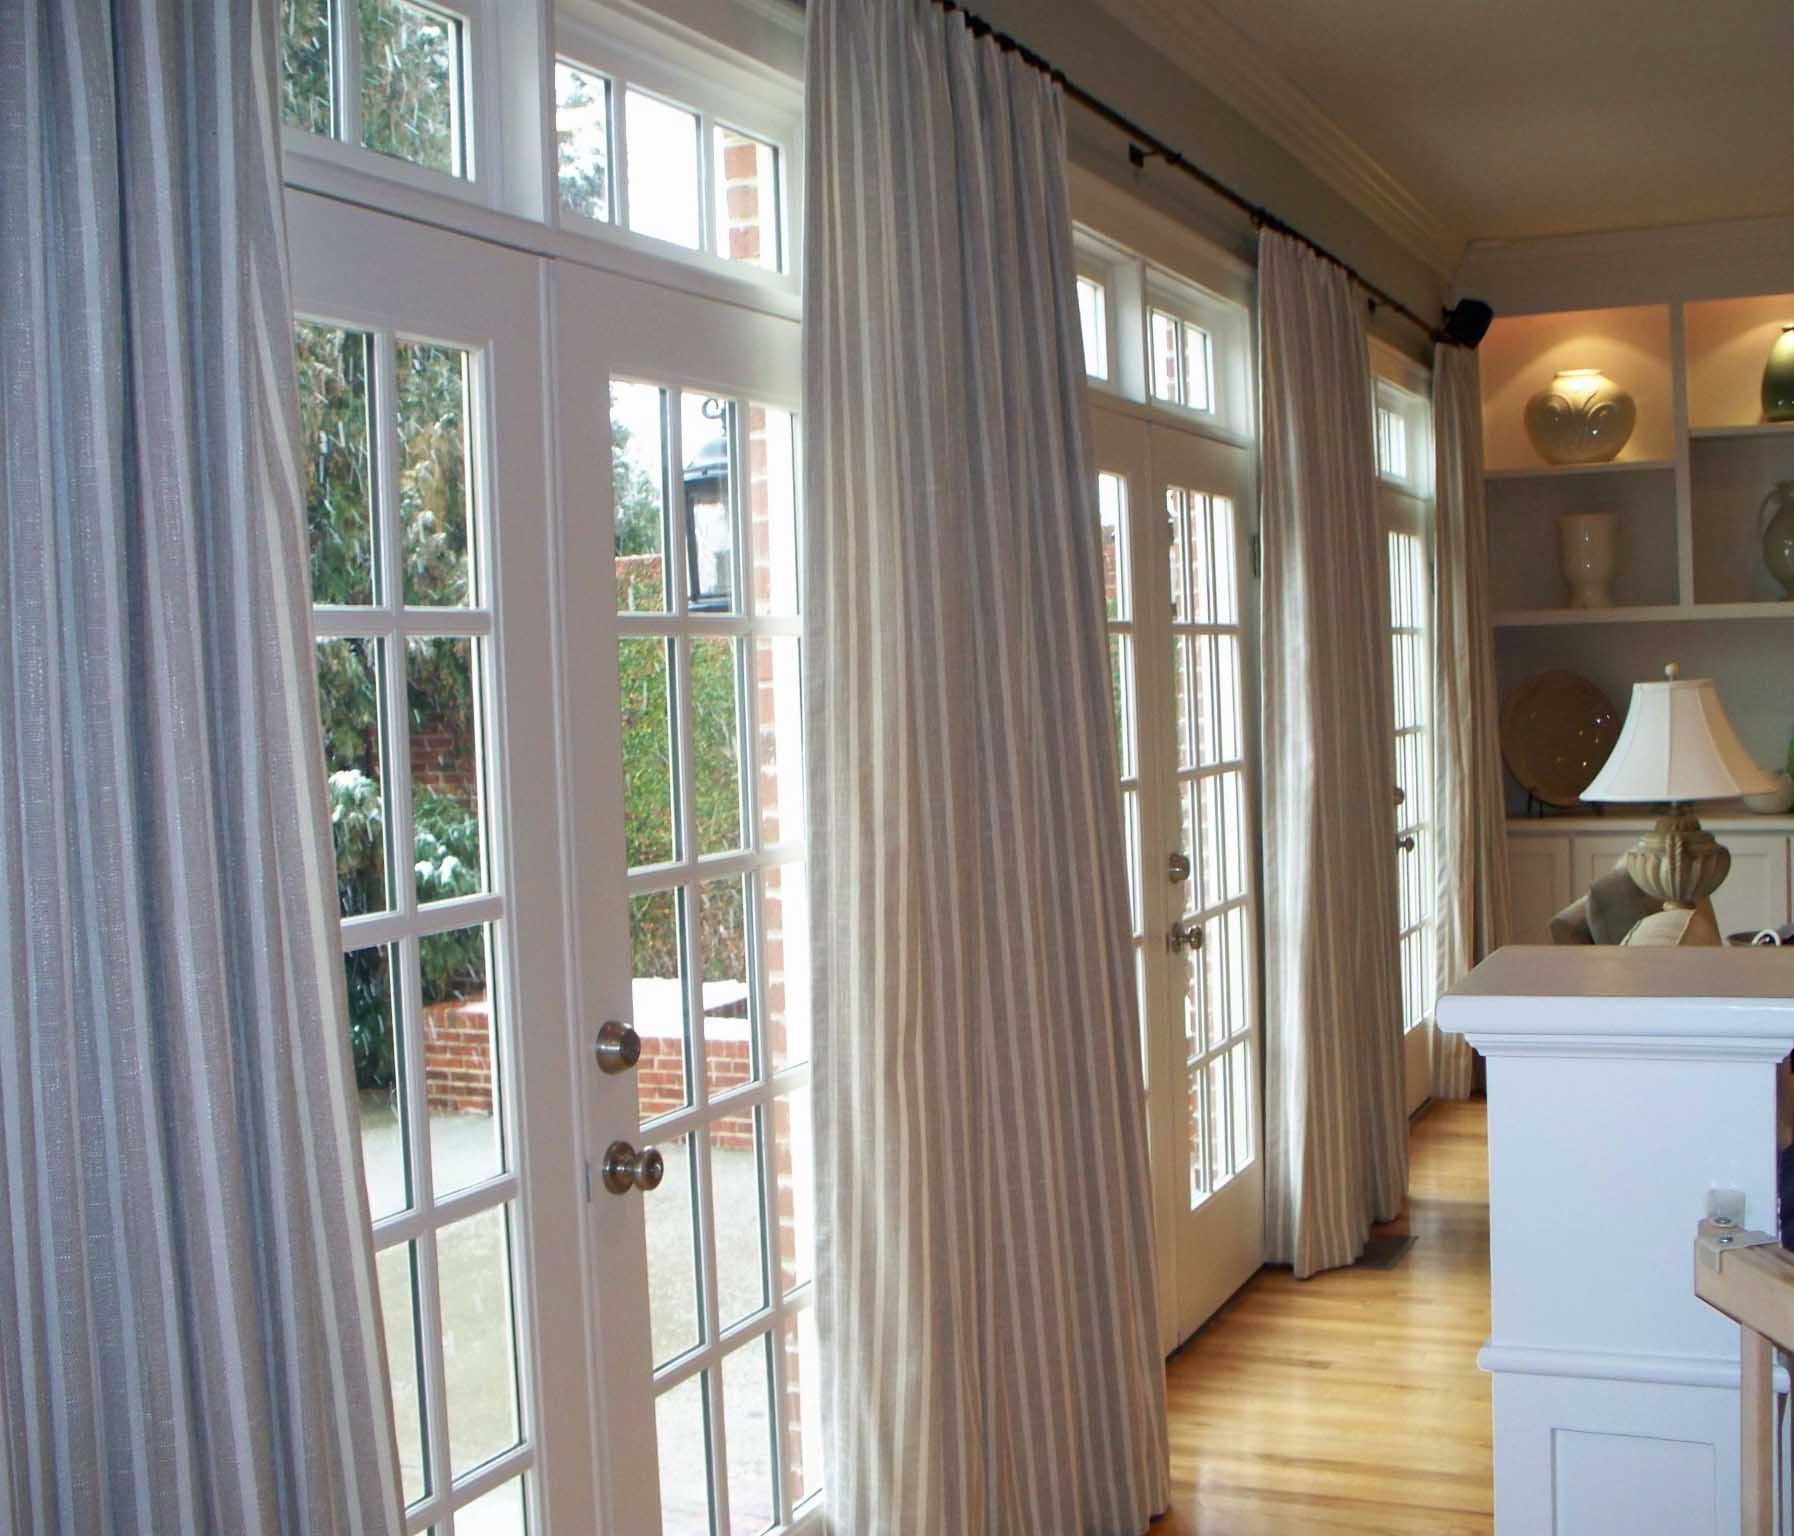 Patio Door Curtains Diy - Bedroom french door curtains window treatments for sliding glass doors